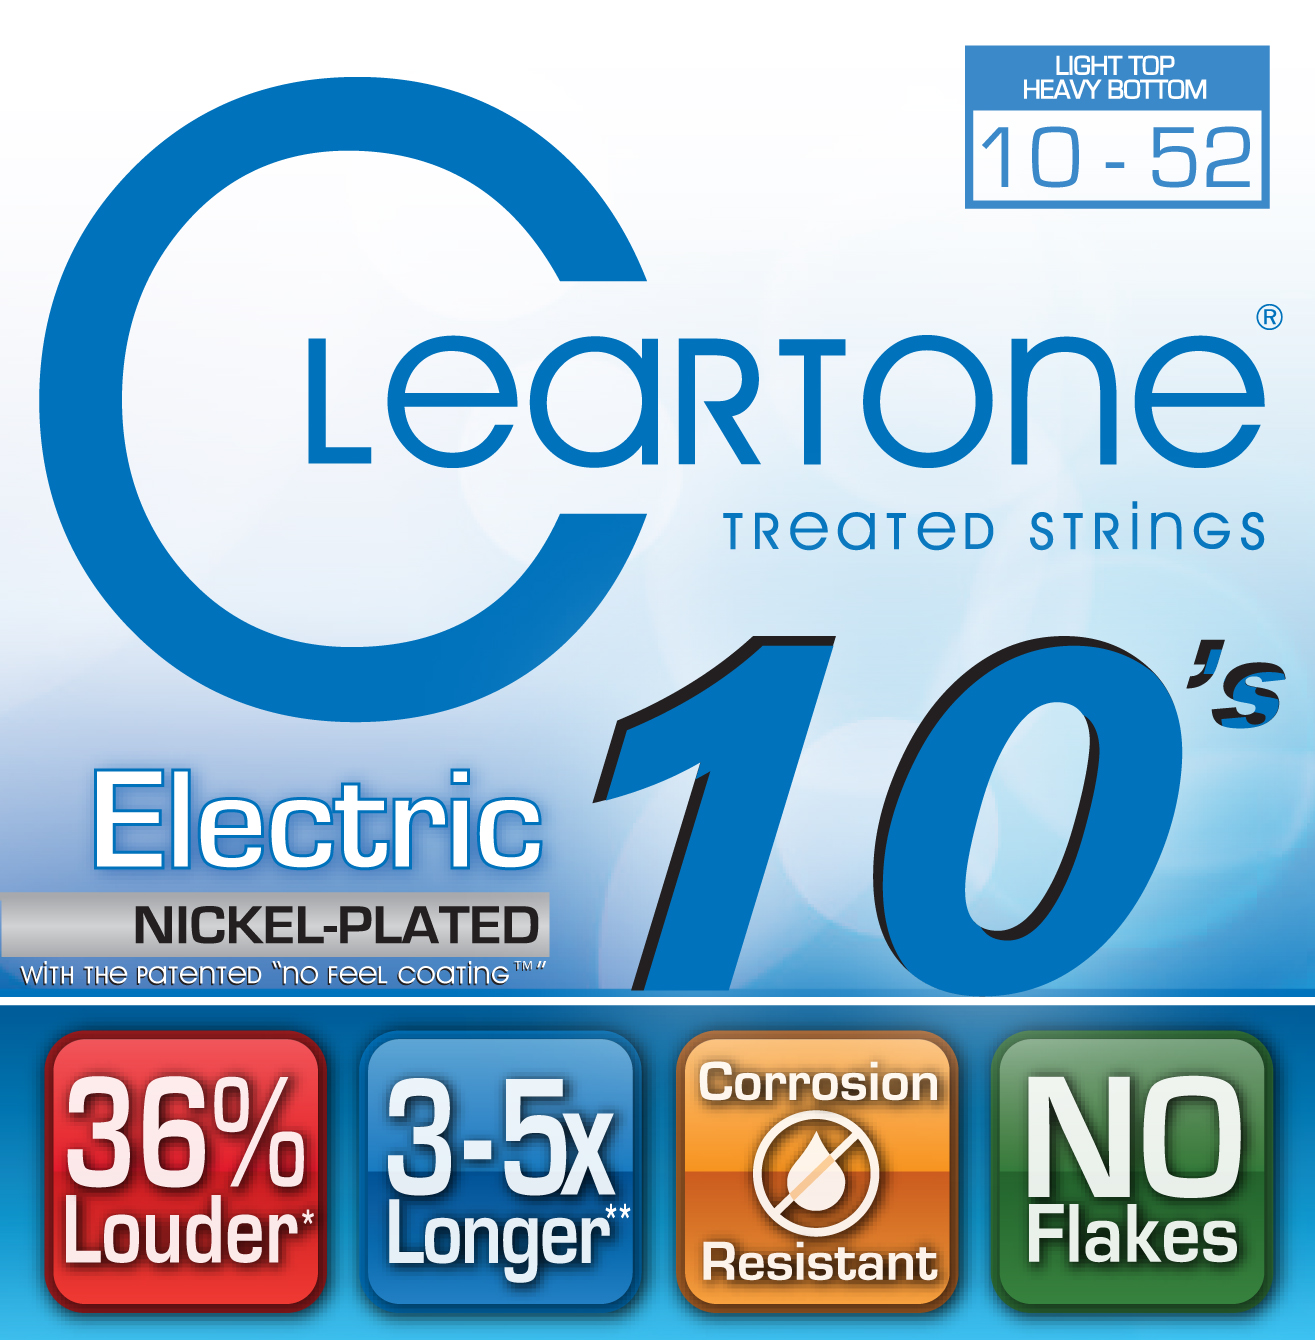 Cleartone EMP Coated Electric Guitar Strings